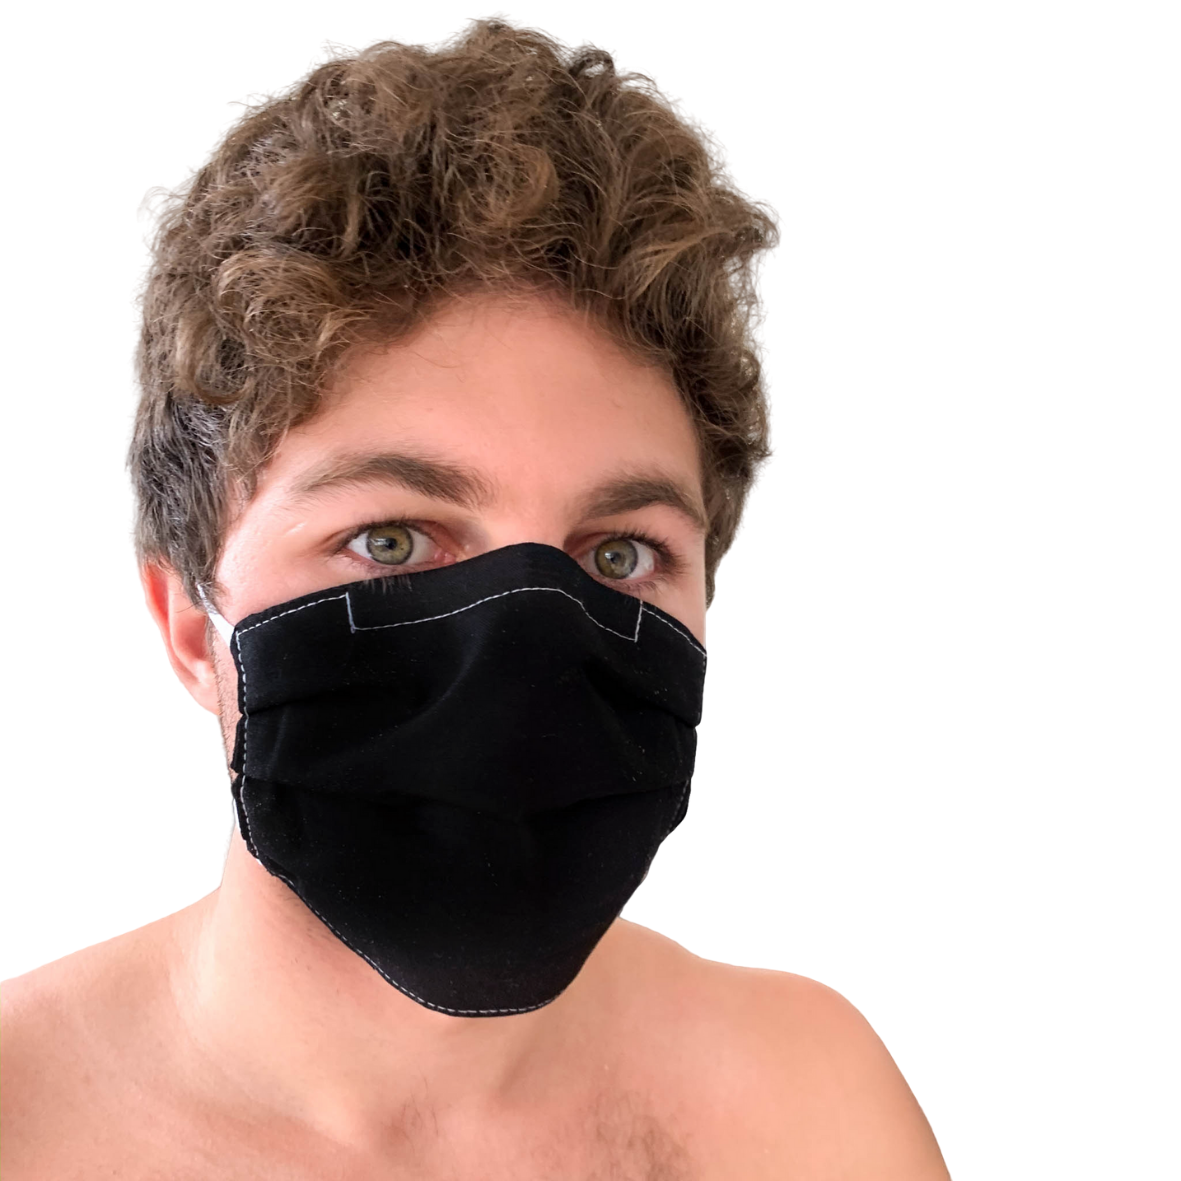 Protective Face Mask - Black